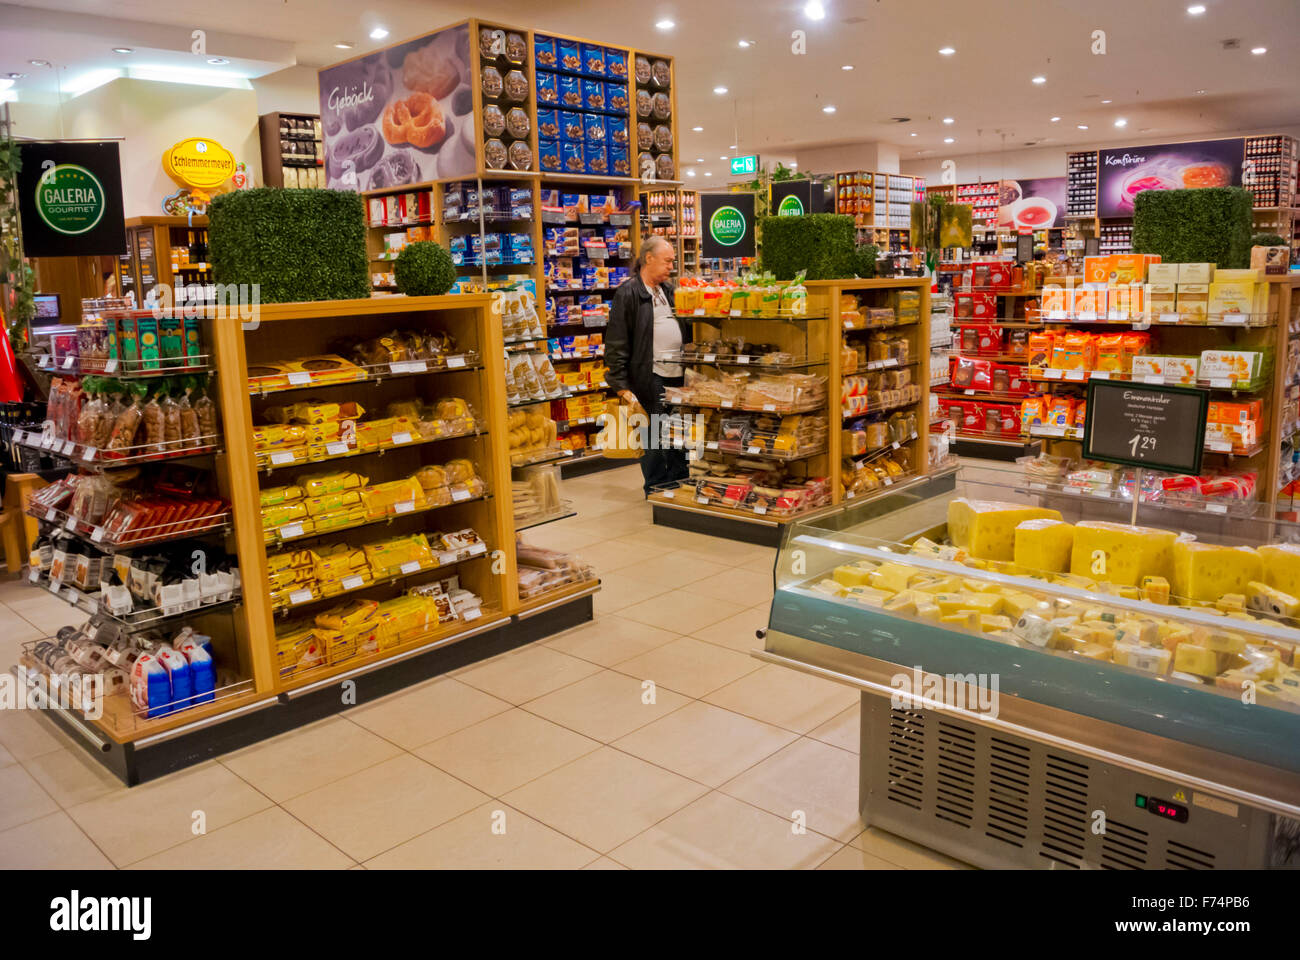 supermarket galeria kaufhof alexanderplatz berlin germany stock photo 90459802 alamy. Black Bedroom Furniture Sets. Home Design Ideas